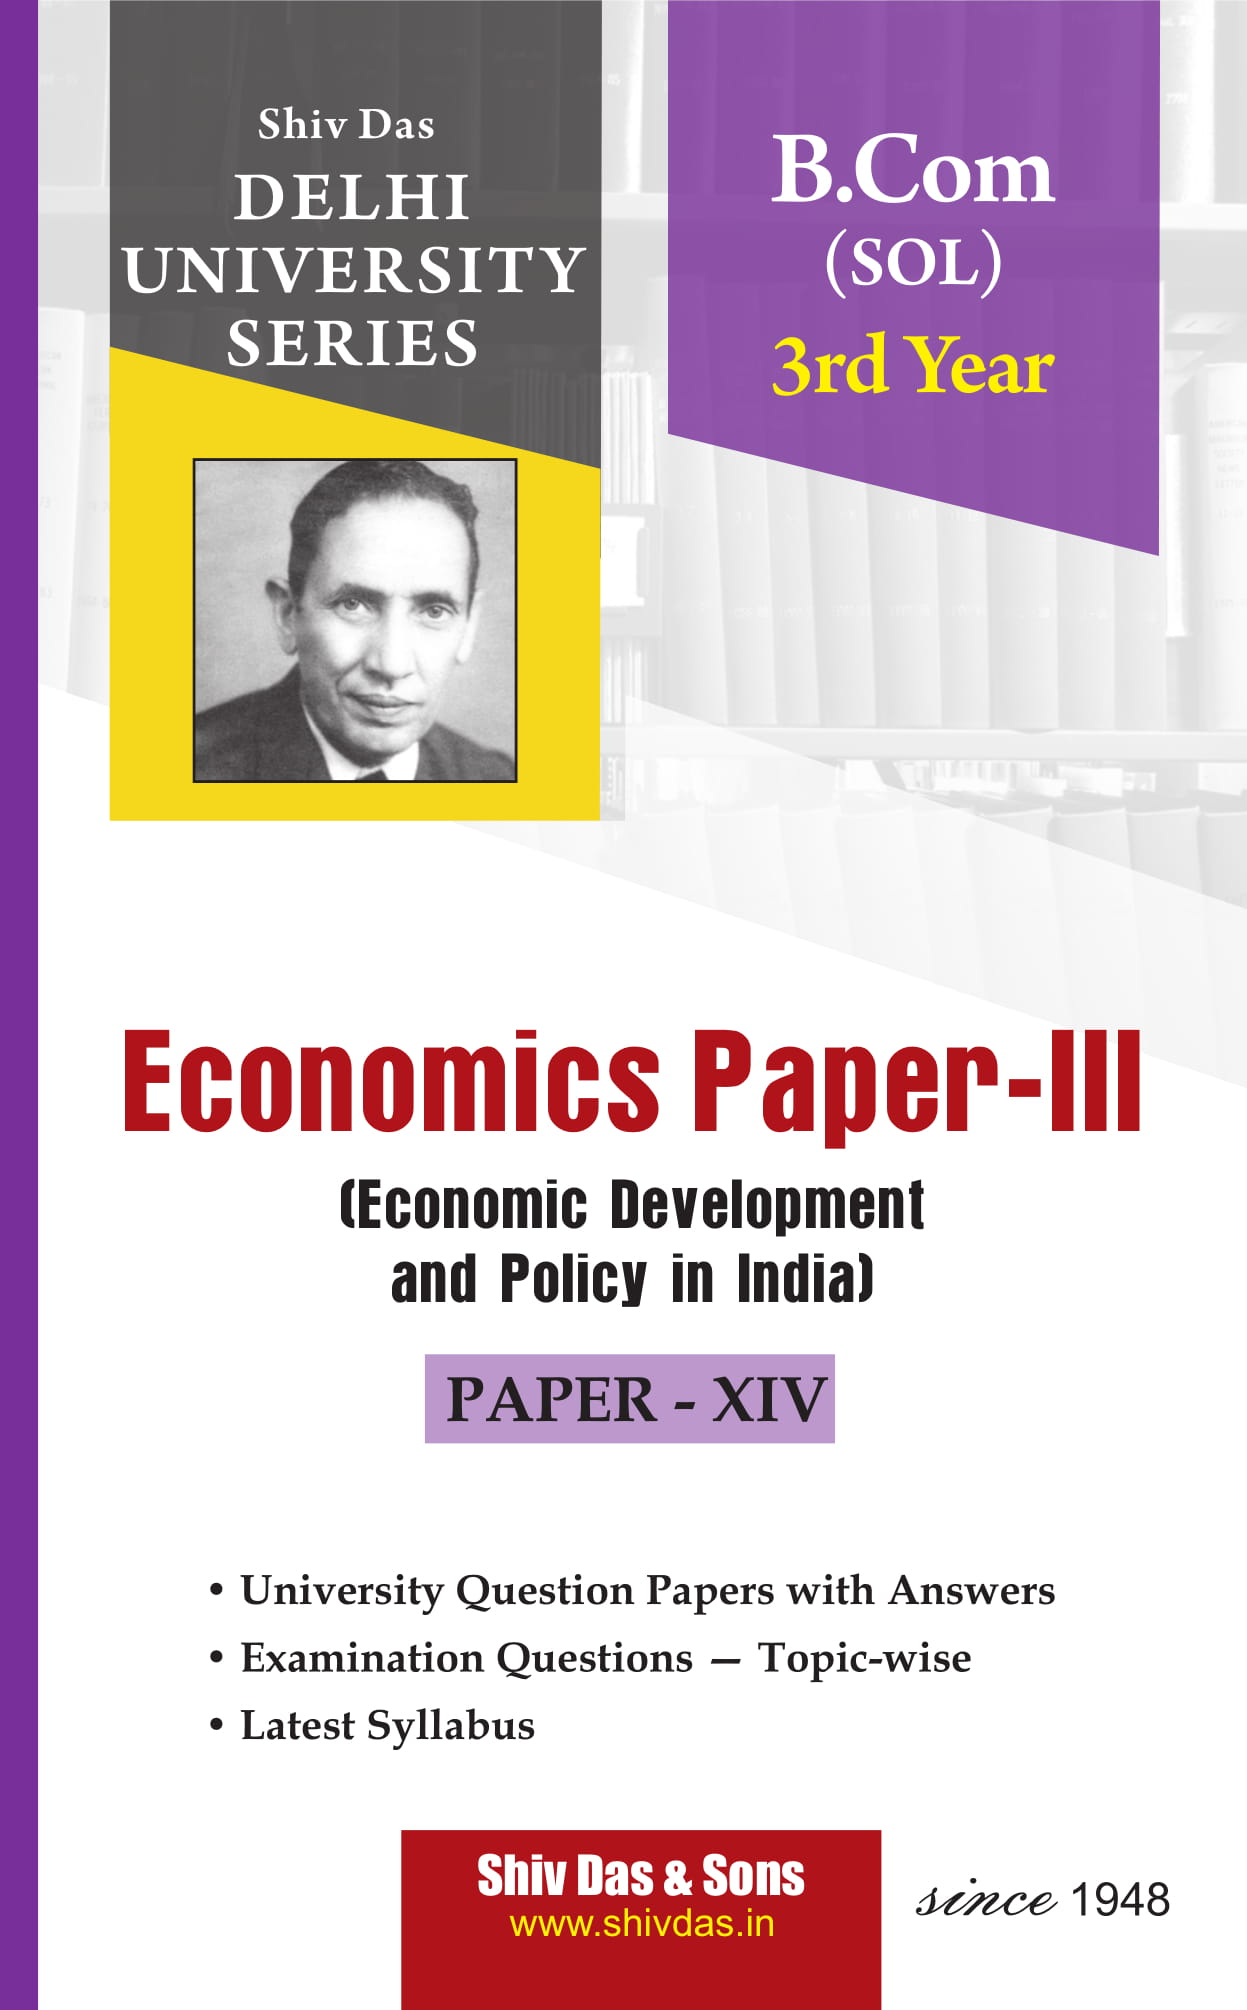 Economics Paper- III (Eng. Med) for B.Com 3rd Year SOL/External